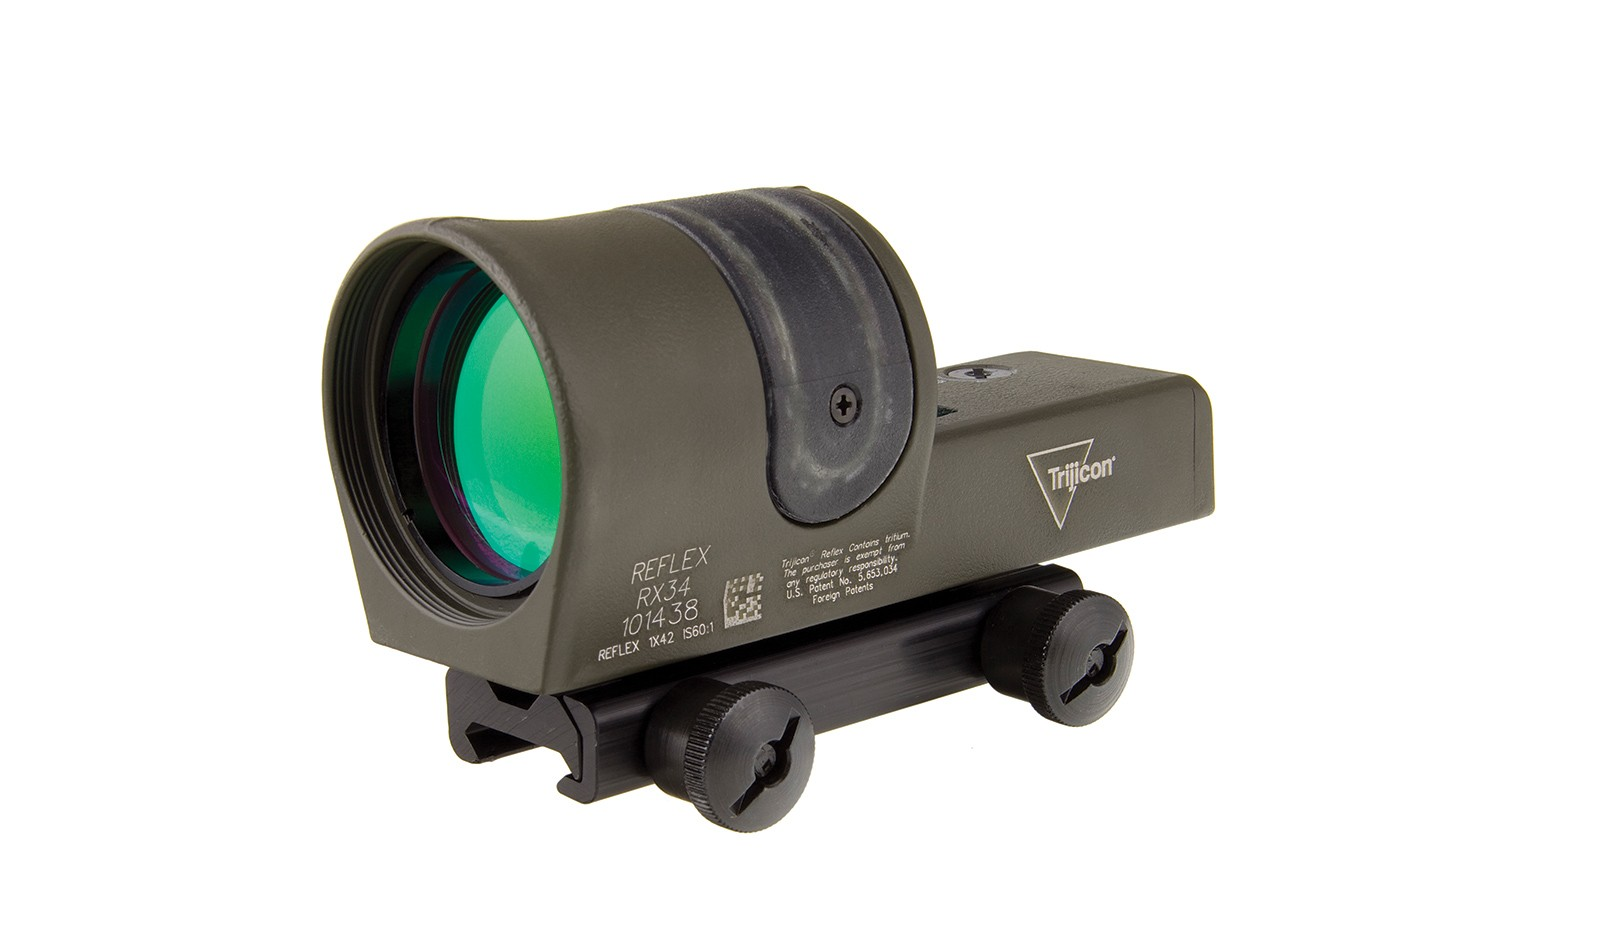 Trijicon<sup>®</sup> Reflex 1x42 Dual Illuminated Sight - OD Green